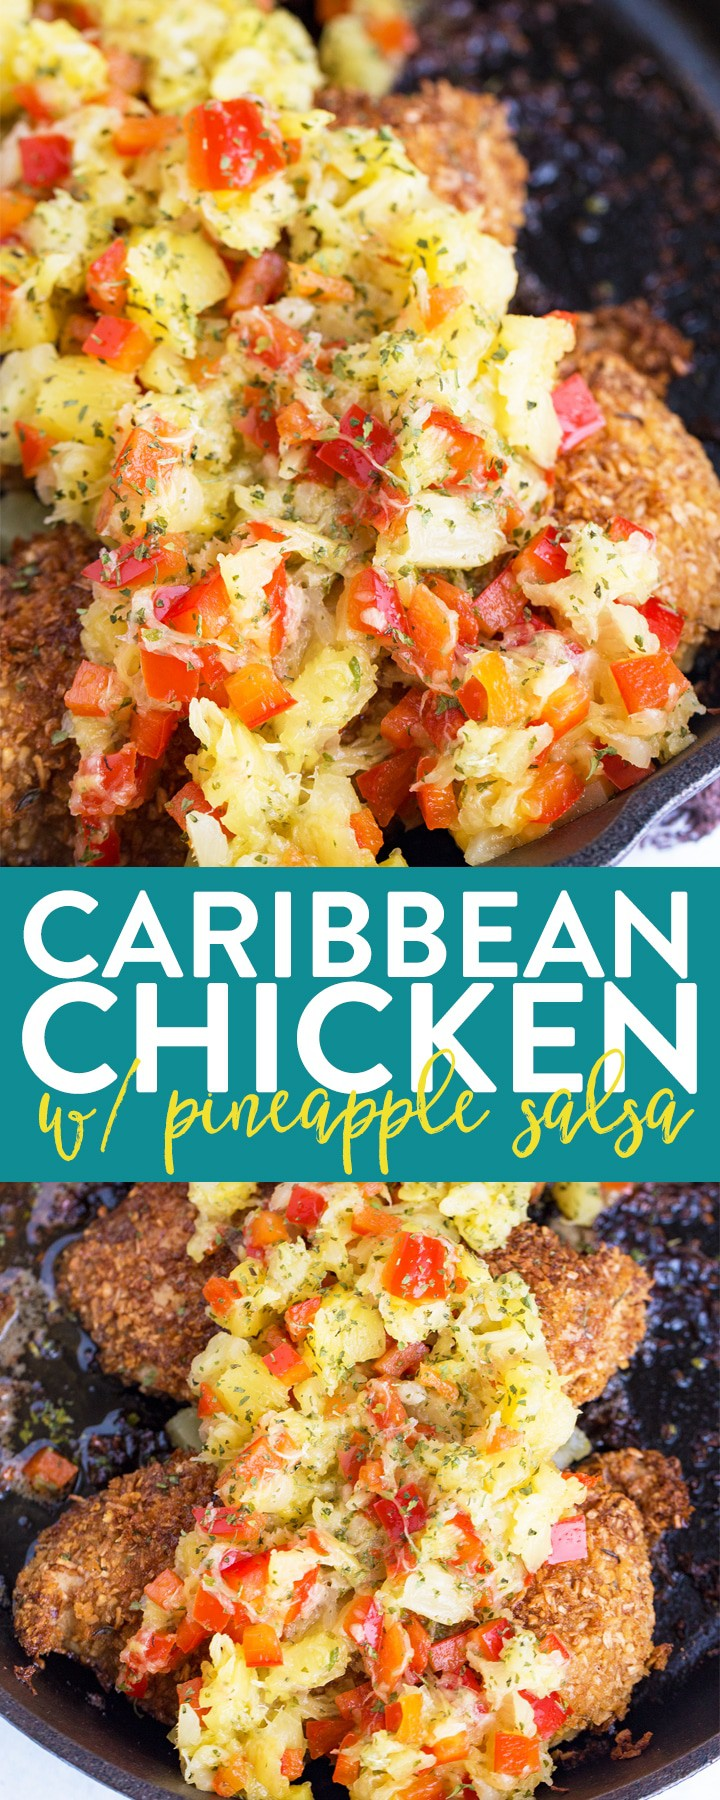 Caribbean Chicken with Pineapple Salsa recipe - An easy chicken dinner inspired by the tropics. Coconut crusted chicken breasts with a homemade Jamaican jerk seasoning with a sweet and tropical pineapple salsa. #ad #thebewitchinkitchen #chickenbreastrecipes #caribbeanchicken #coconutcrustedchicken #chickendotca #jerkseasoning #pineapplerecipes #salsa #easyrecipes #weeknightrecipes